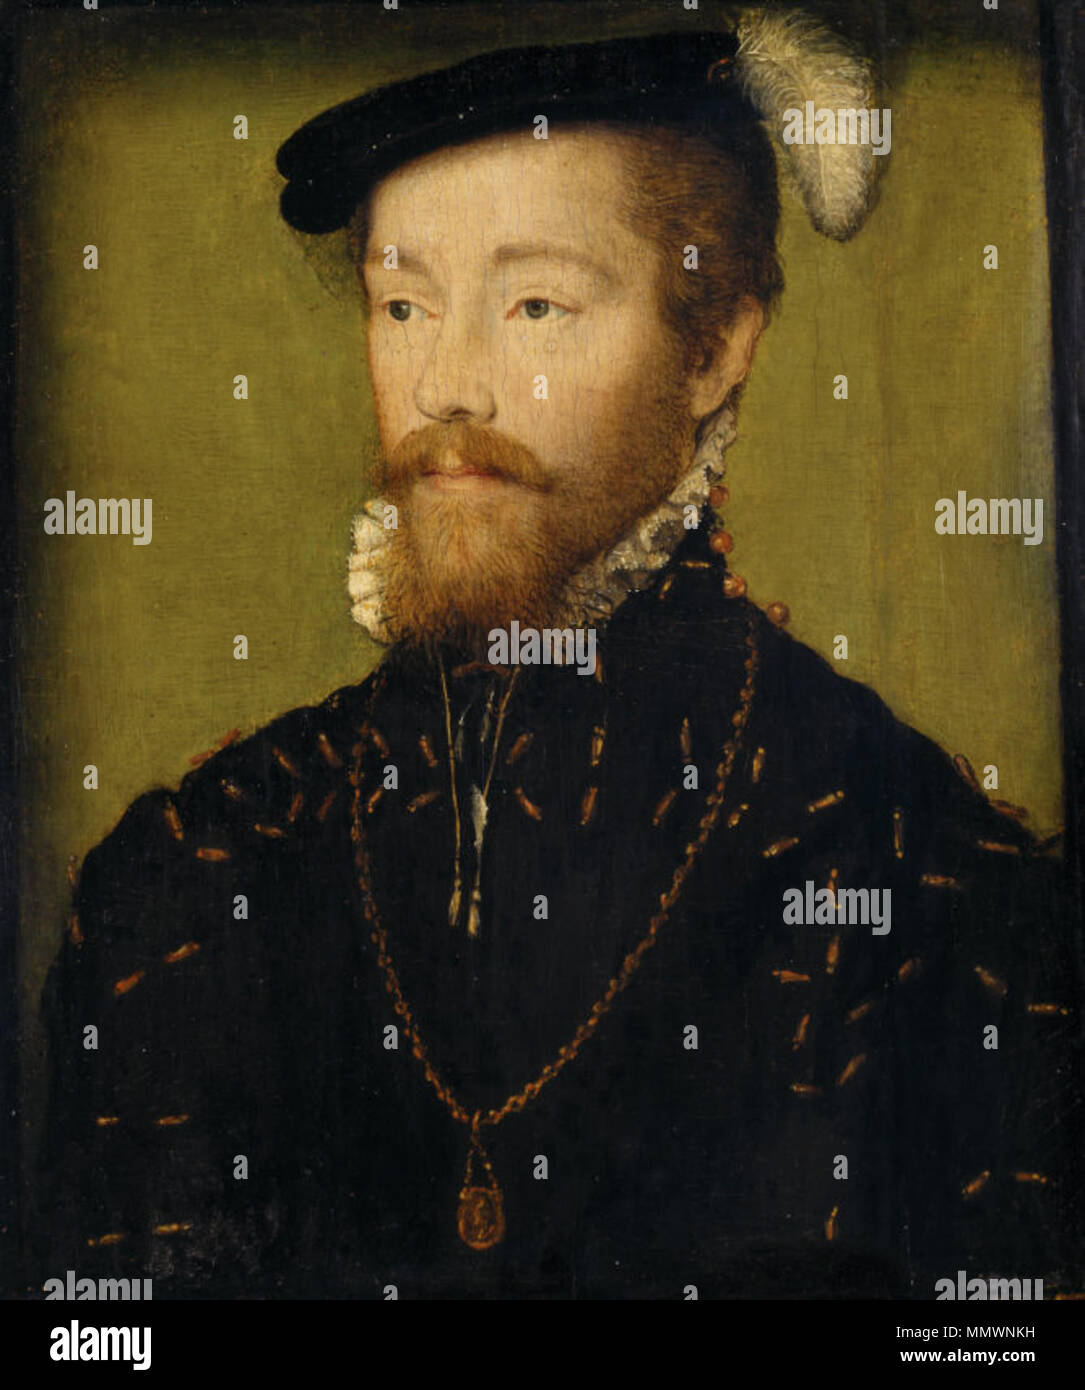 Oil painting on panel, King James V, King of Scotland (1512? 1542), aged 25 by Corneille de Lyon (The Hague 1500/10 ? Lyons 1575), reputedly, before cradling inscribed on the back: Le Roi, age 25, circa 1537. A head-and-shoulders portrait of a bearded young man, turned slightly to the left, gazing to the left, wearing a black doublet decorated with gold aglets, and a gold chain and pendant medallion, the Order of St Michel, he has a black hat adorned with a white feather against a green background. Corneille de Lyon - King James V of Scotland - Polesden Lacey Stock Photo